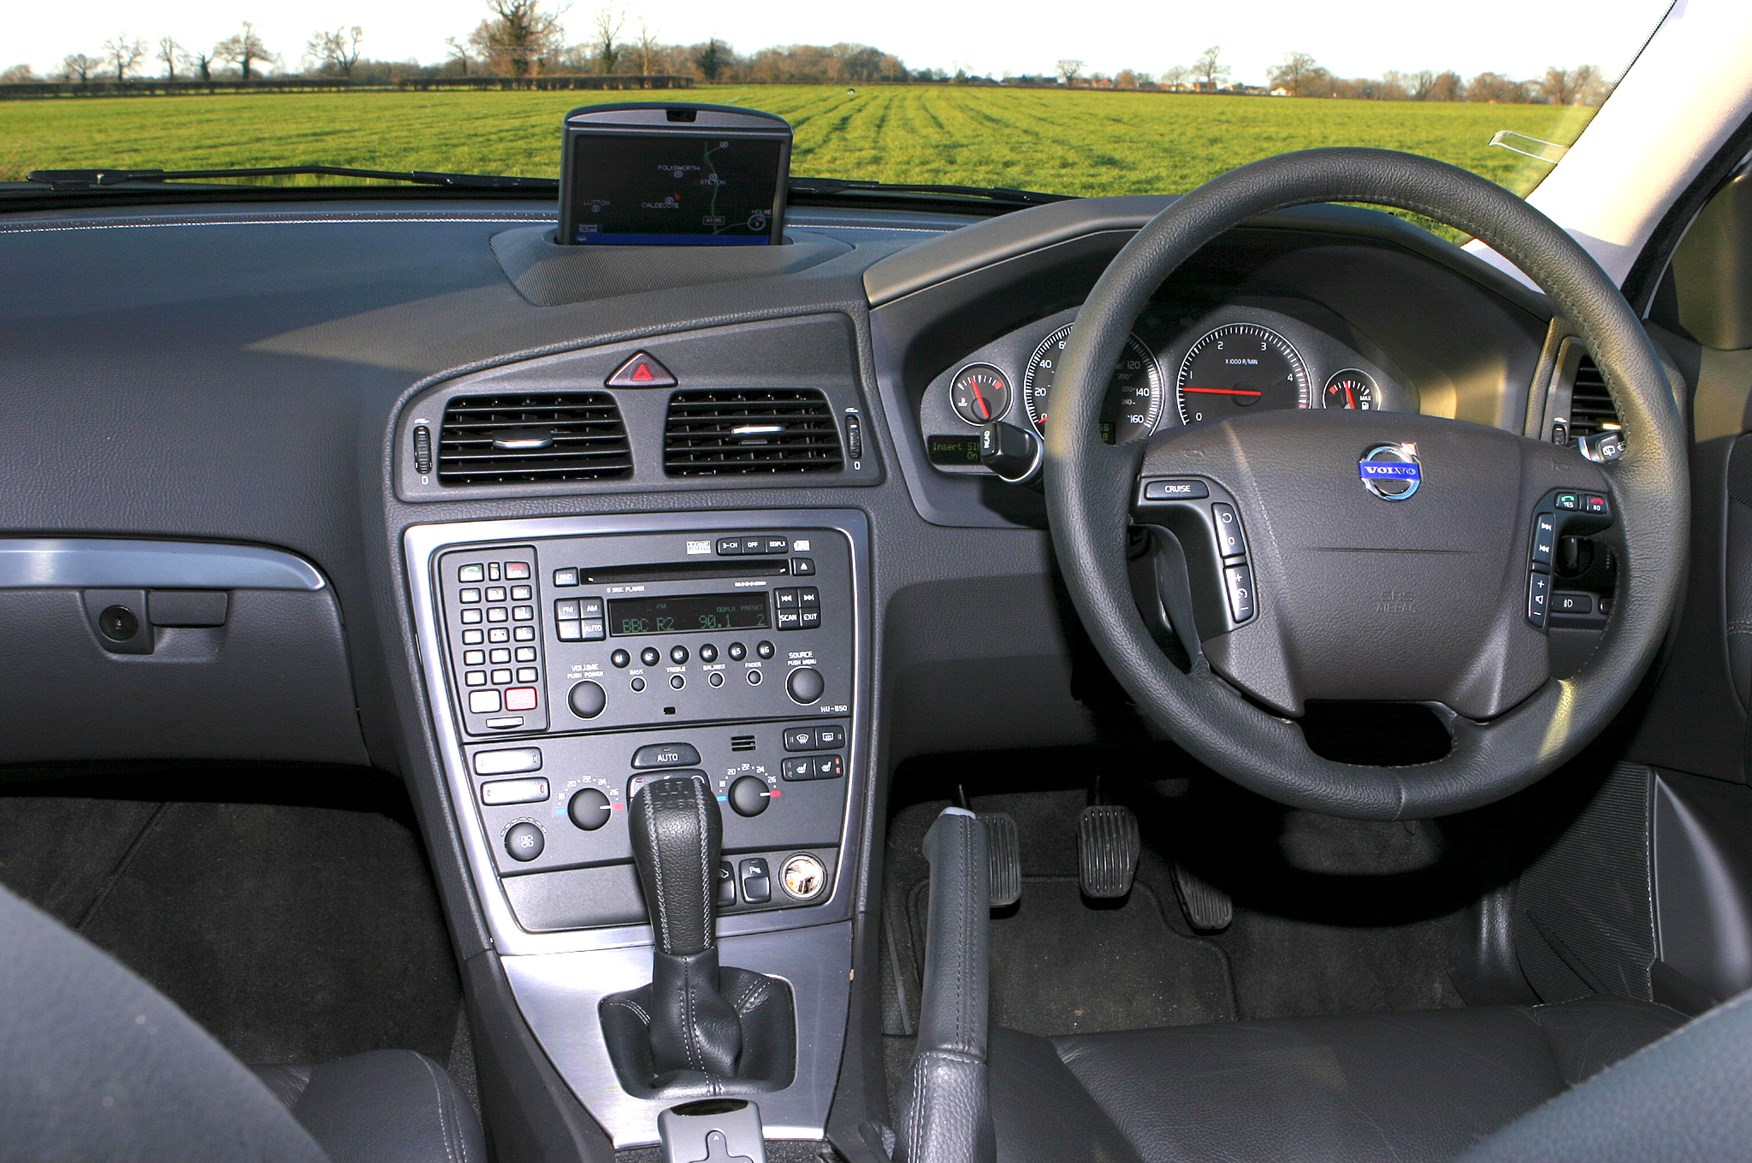 Volvo V70 Estate (2000 - 2007) Features, Equipment and Accessories ...